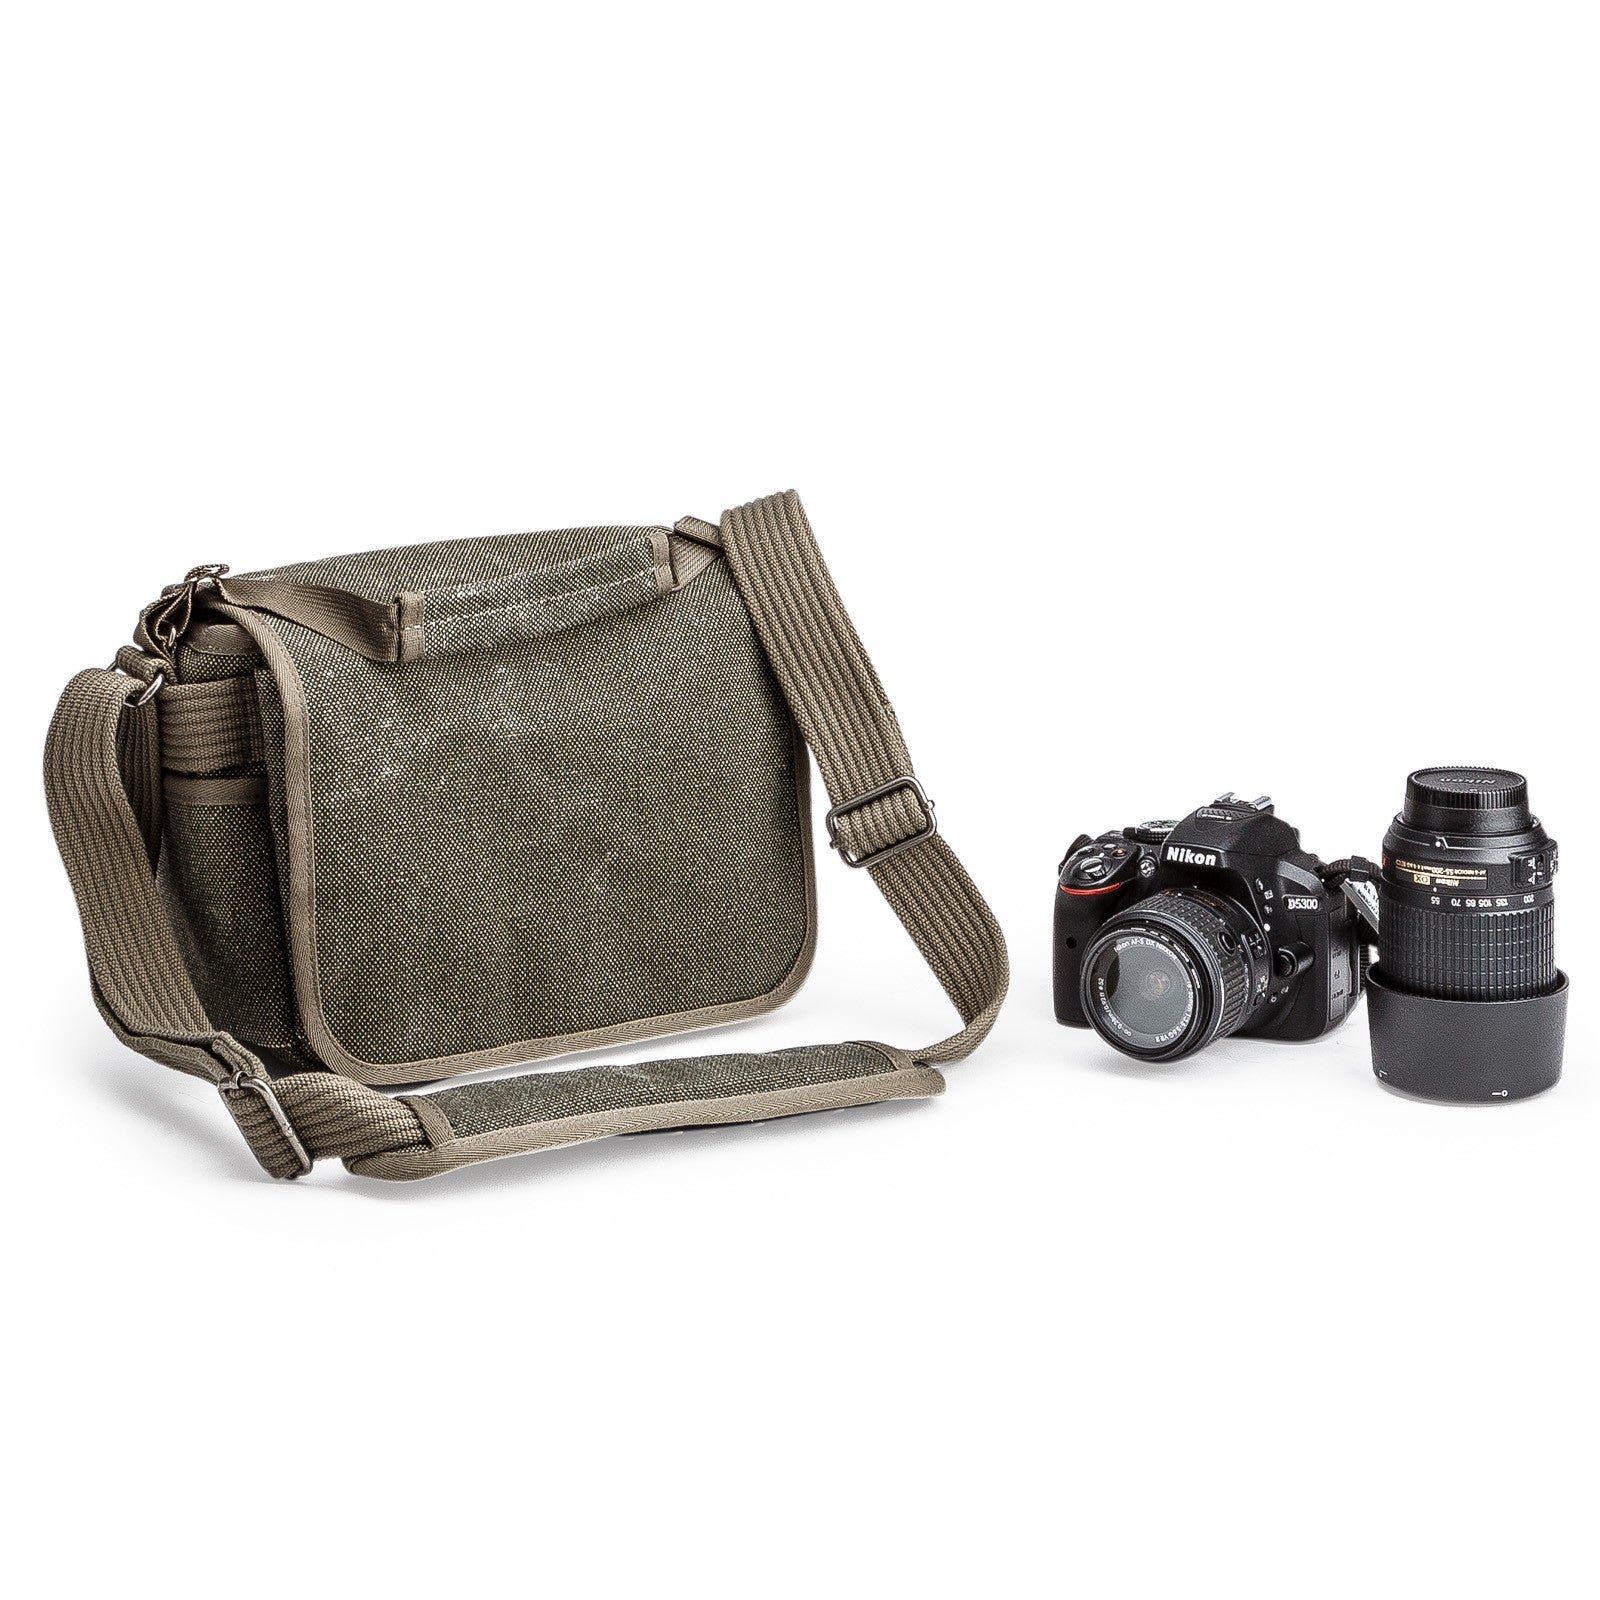 a01bc7b68a14 Retrospective 5 - Best Photography Camera Shoulder Bag • Think Tank ...